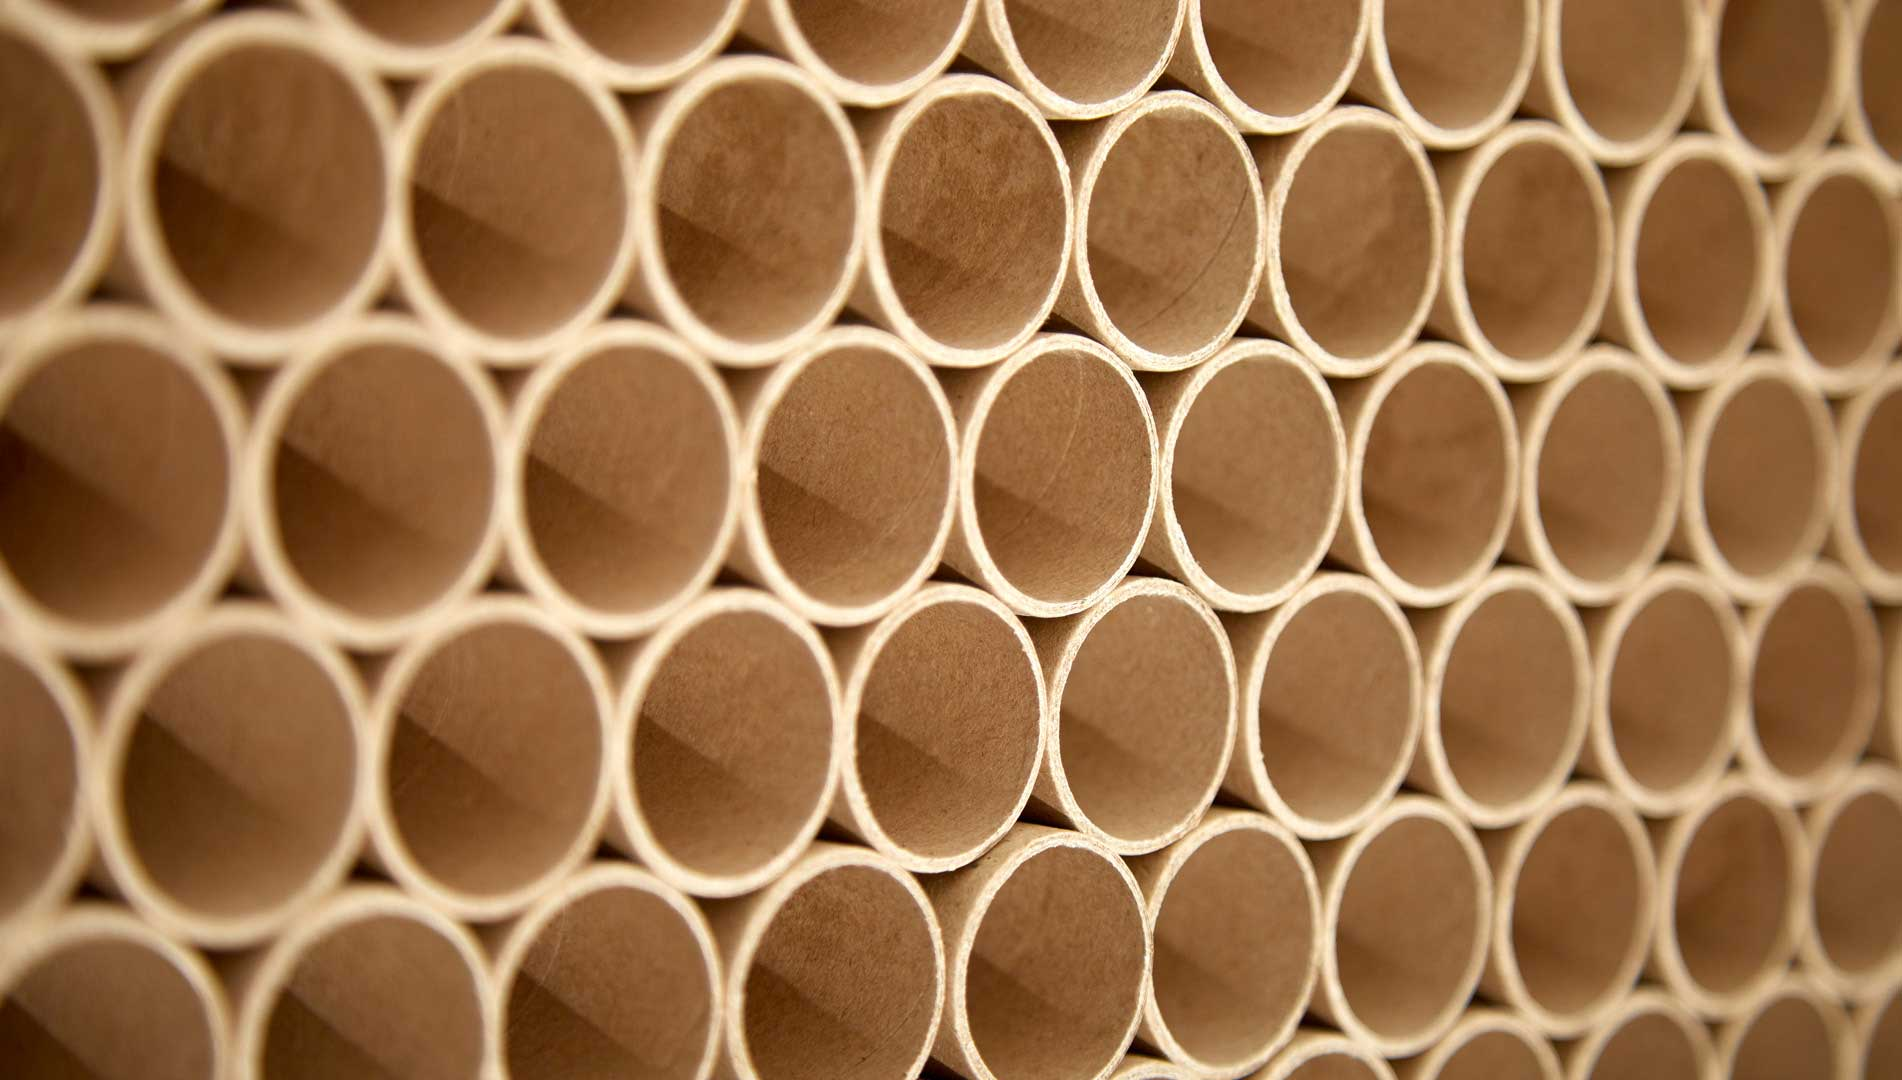 paper spools or paper tubes